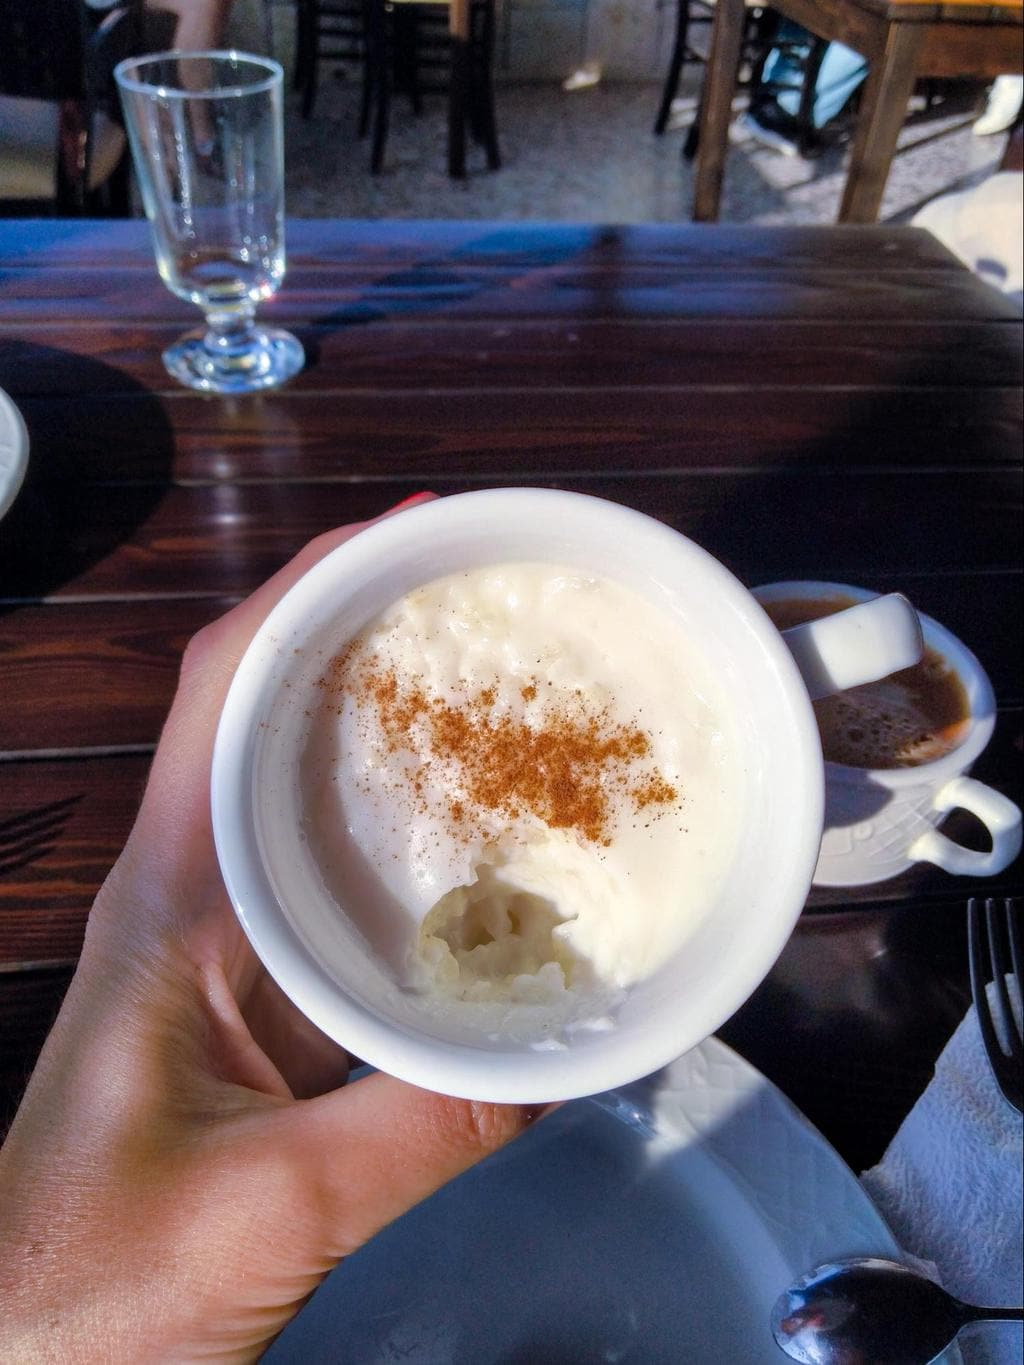 Albanian rice pudding